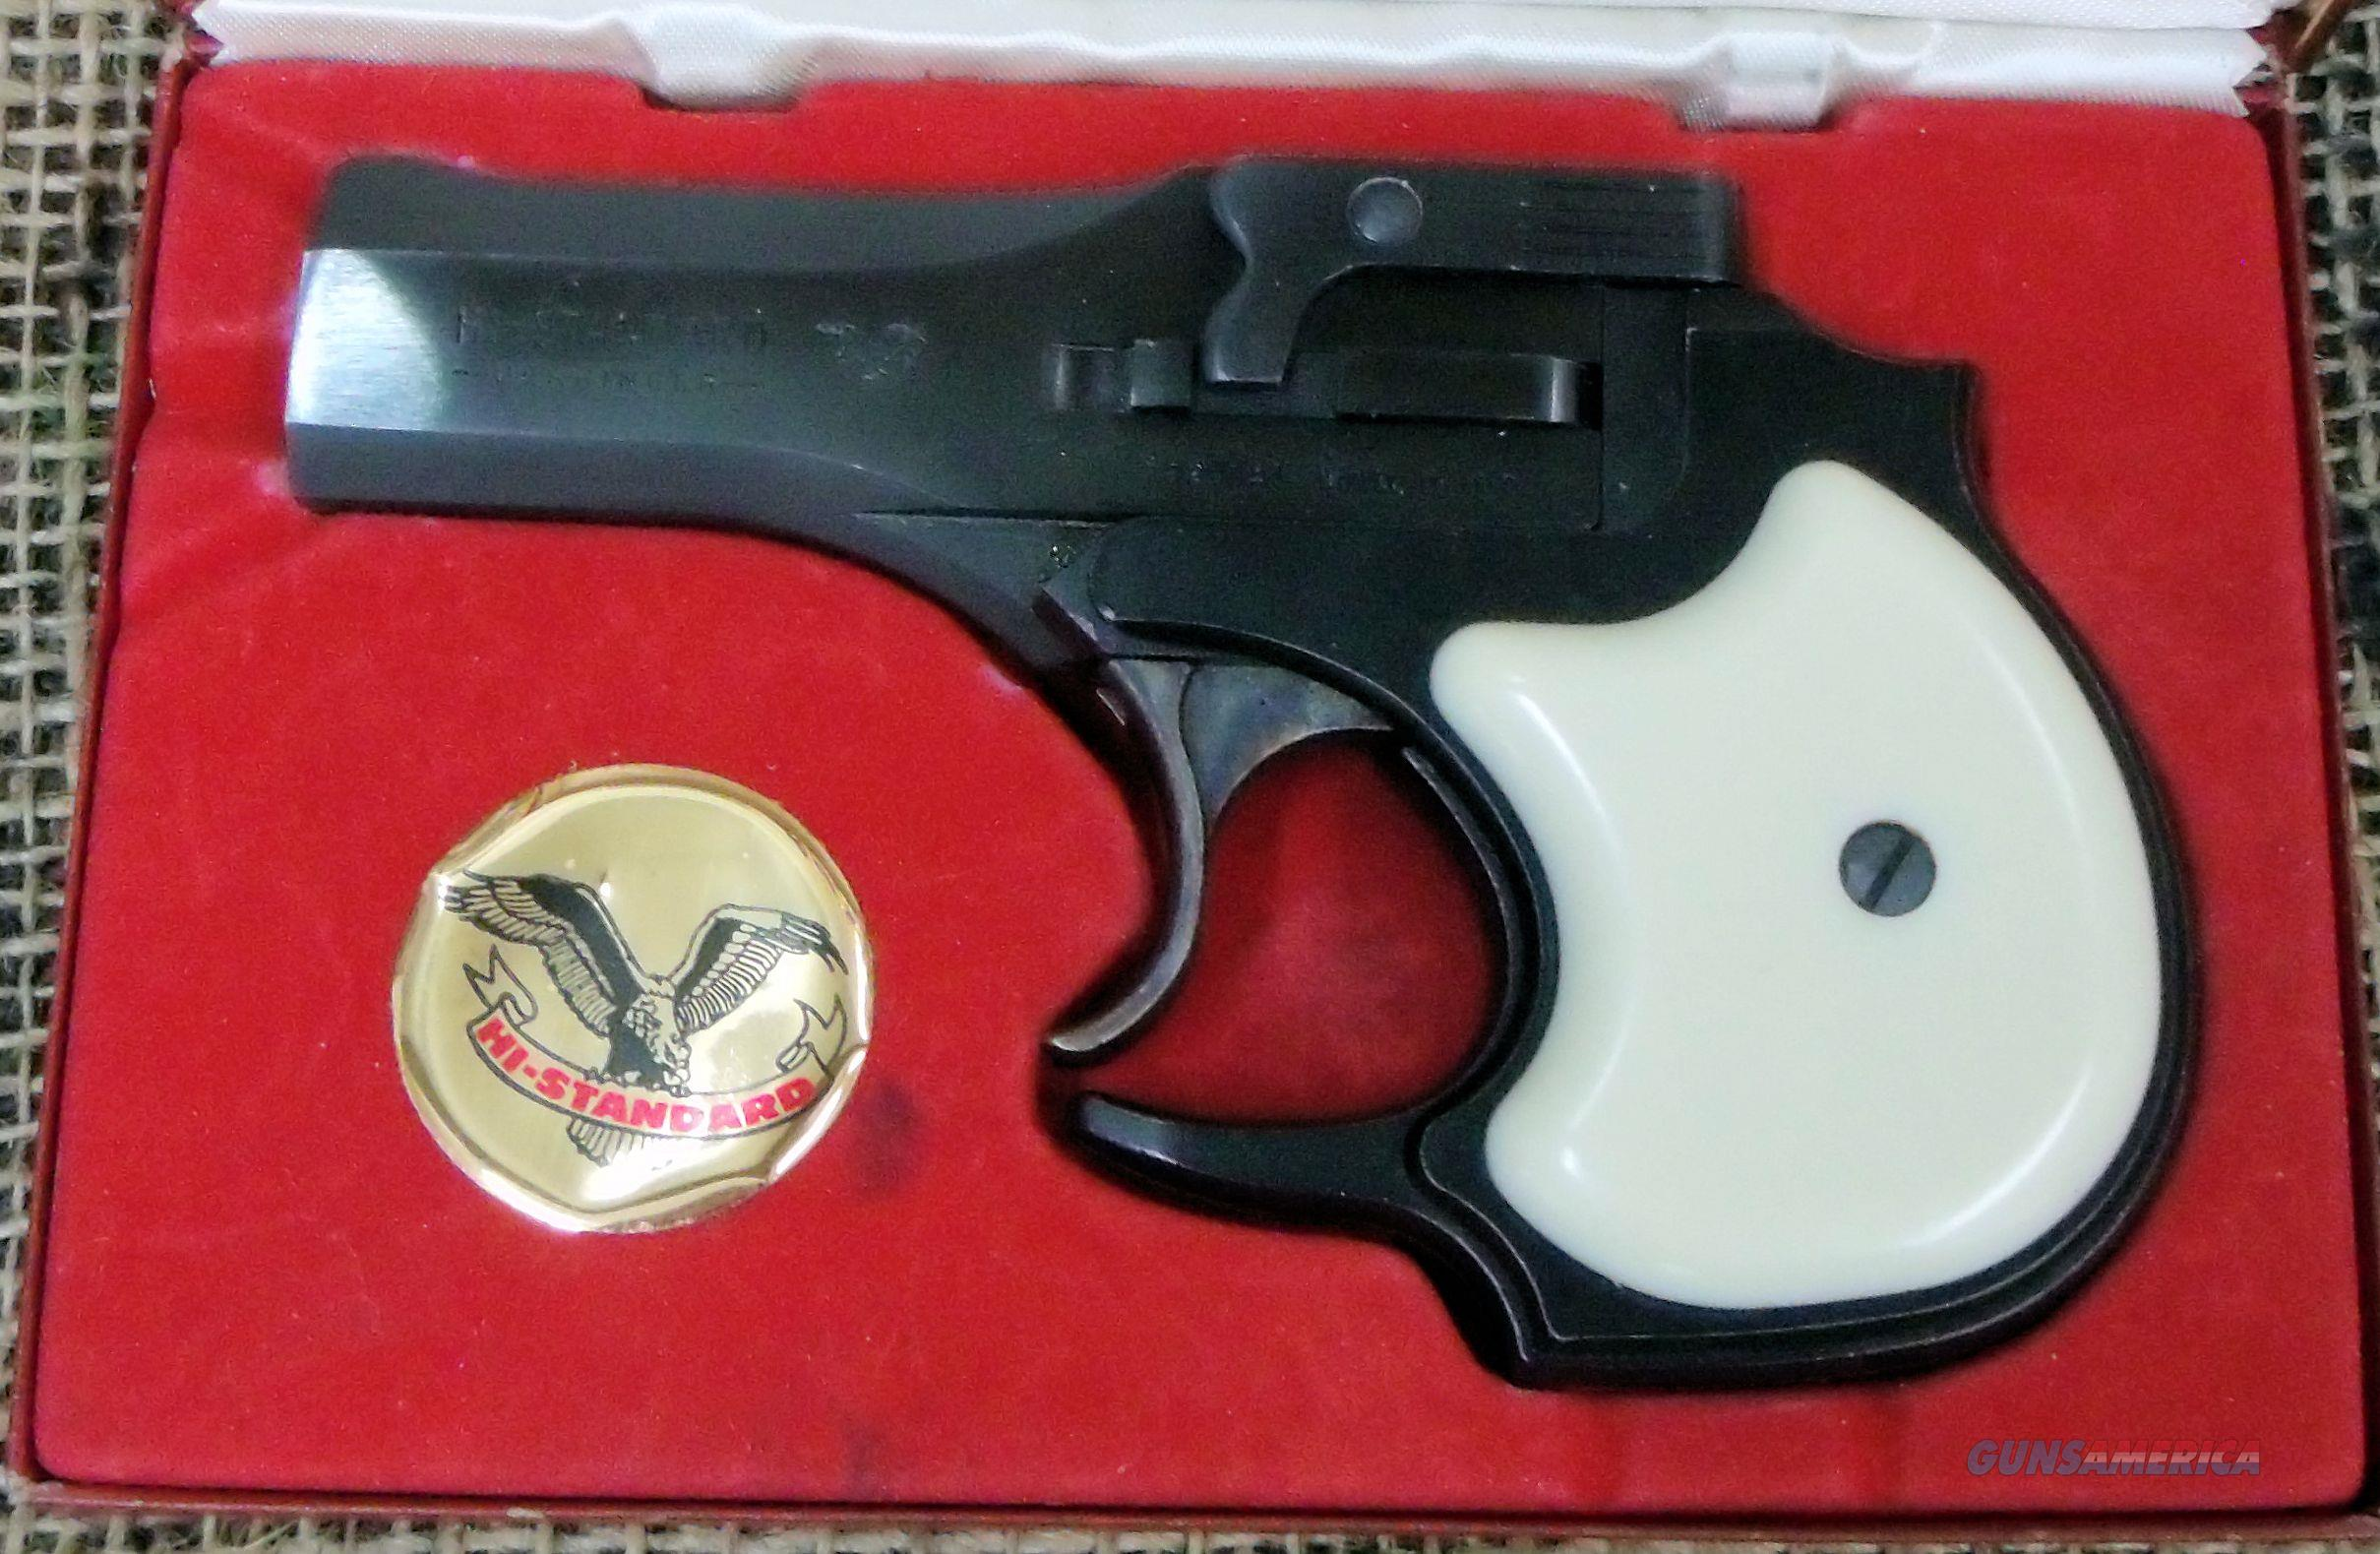 HIGH STANDARD Derringer Mod. D-100 Handgun in 22LR Cal.  Guns > Pistols > High Standard Pistols